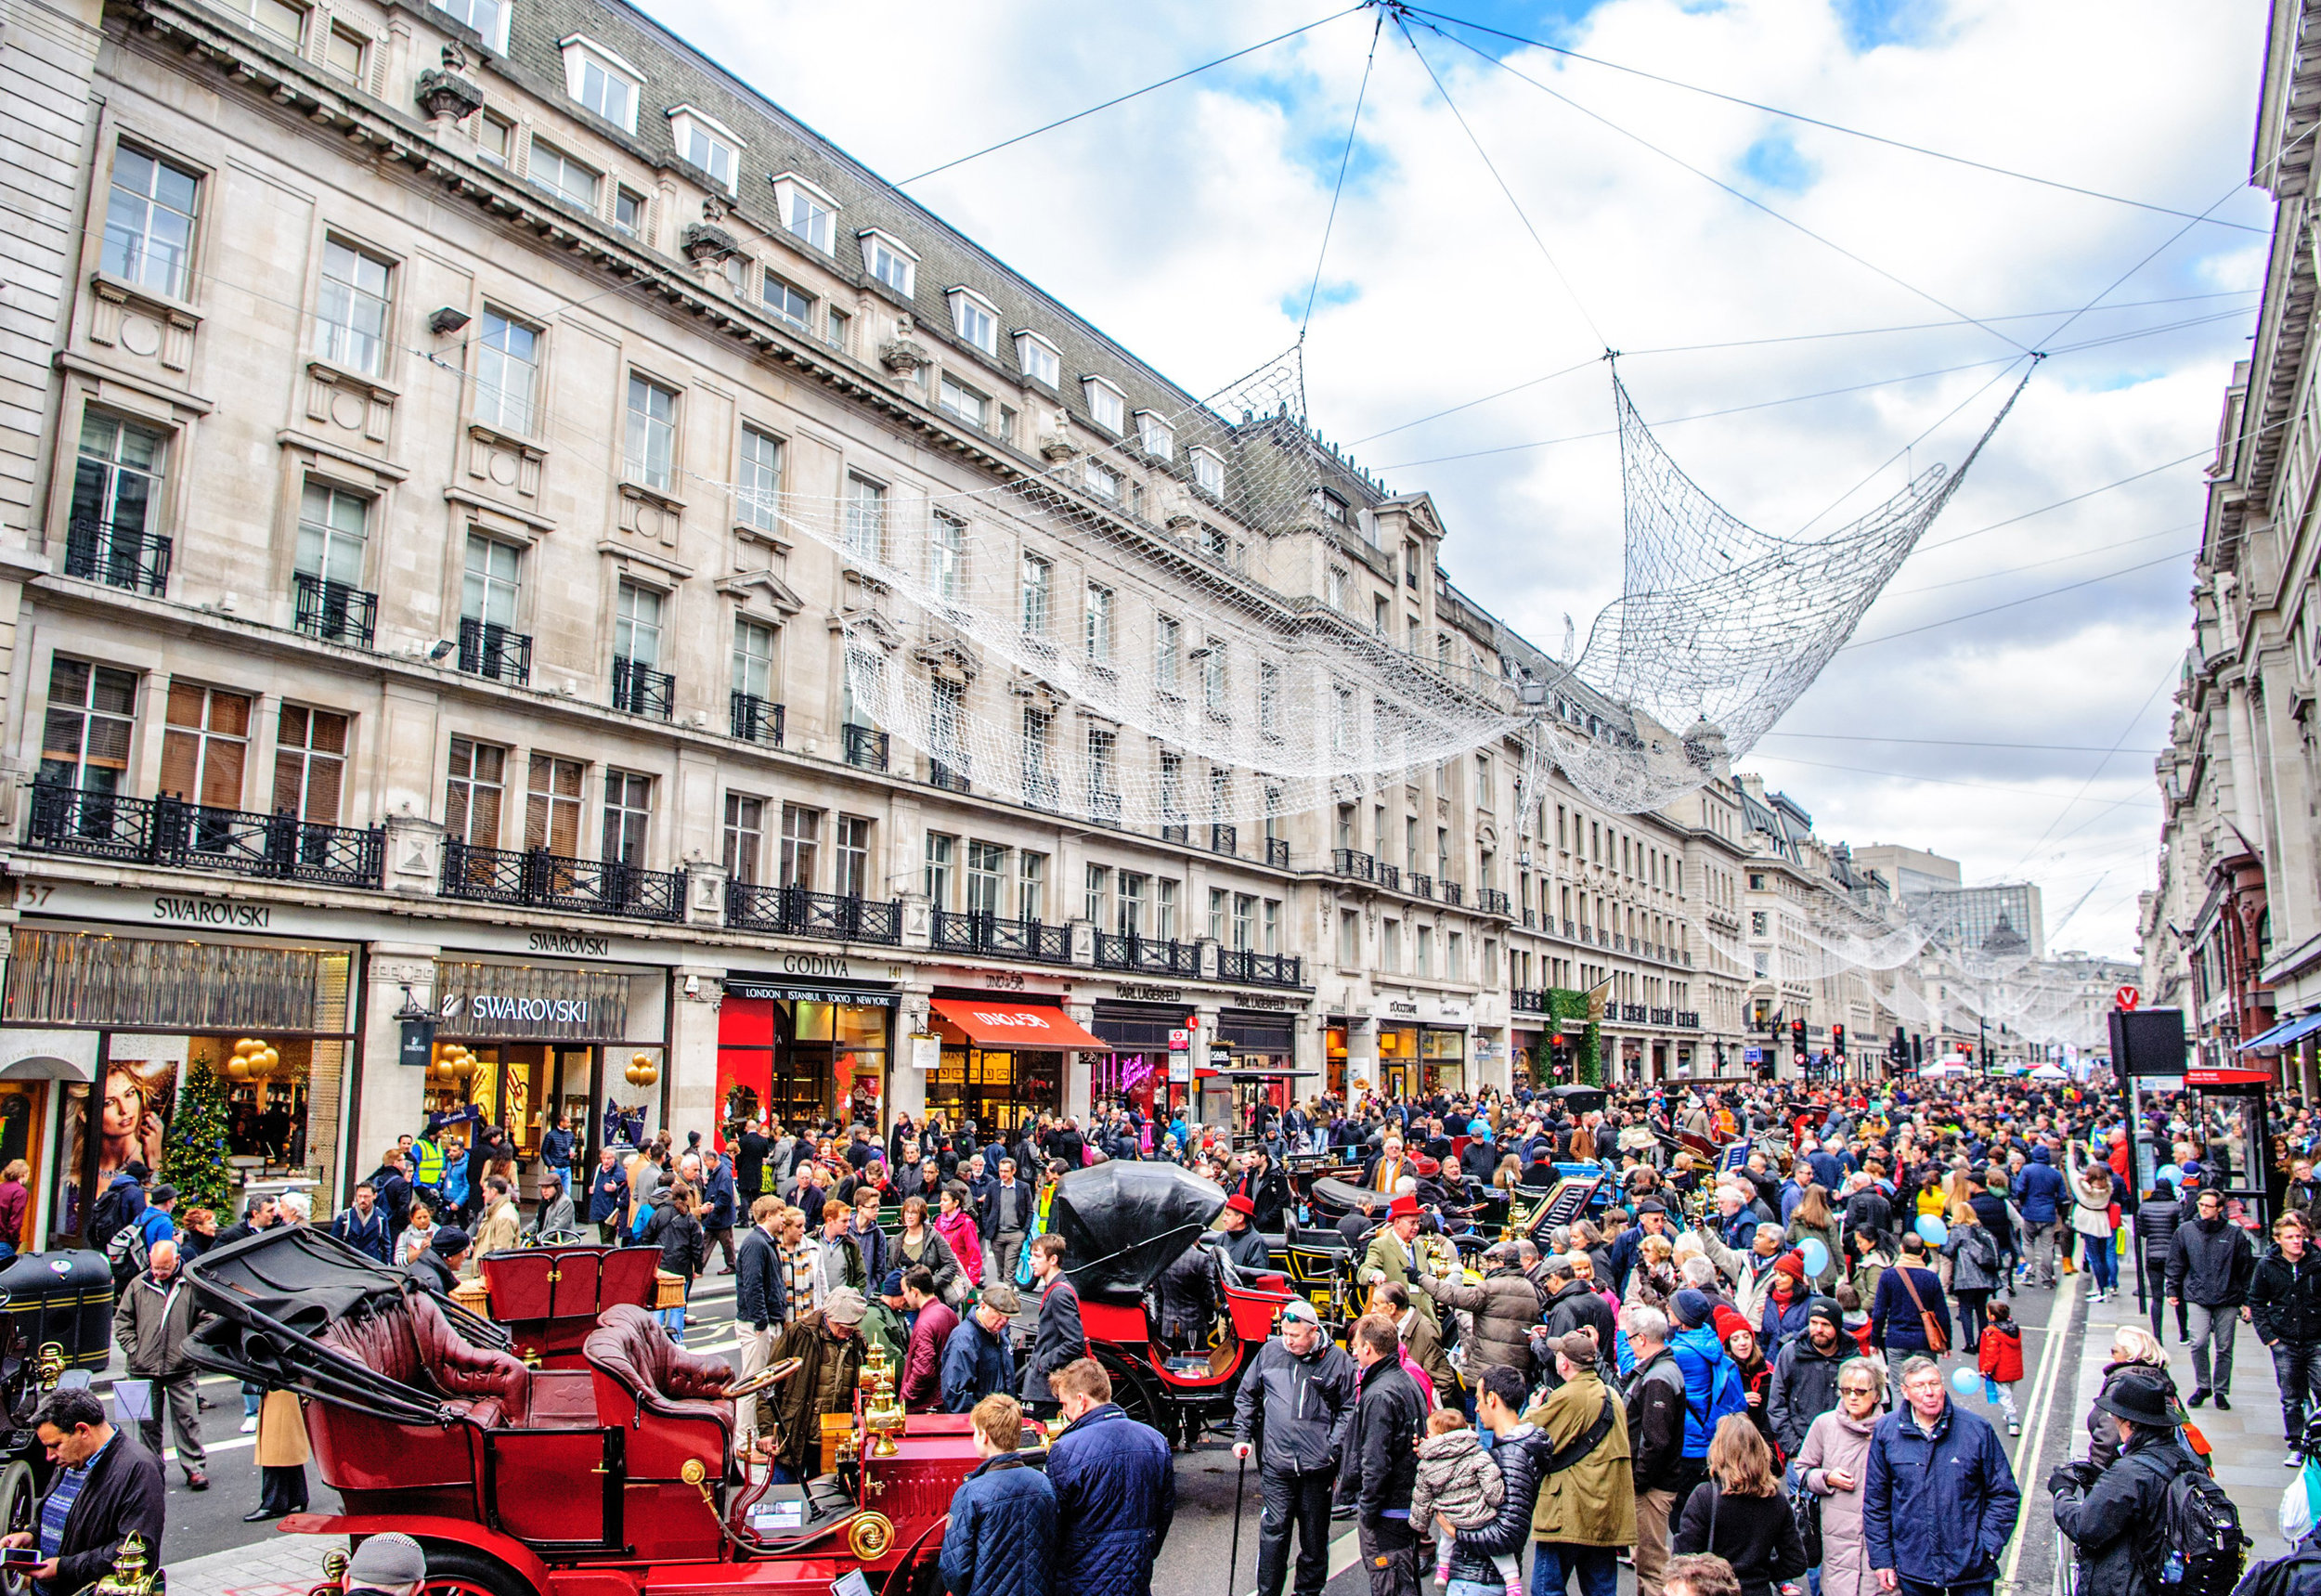 Huge-crowds-for-Regent-Street-Motor-Show.jpg